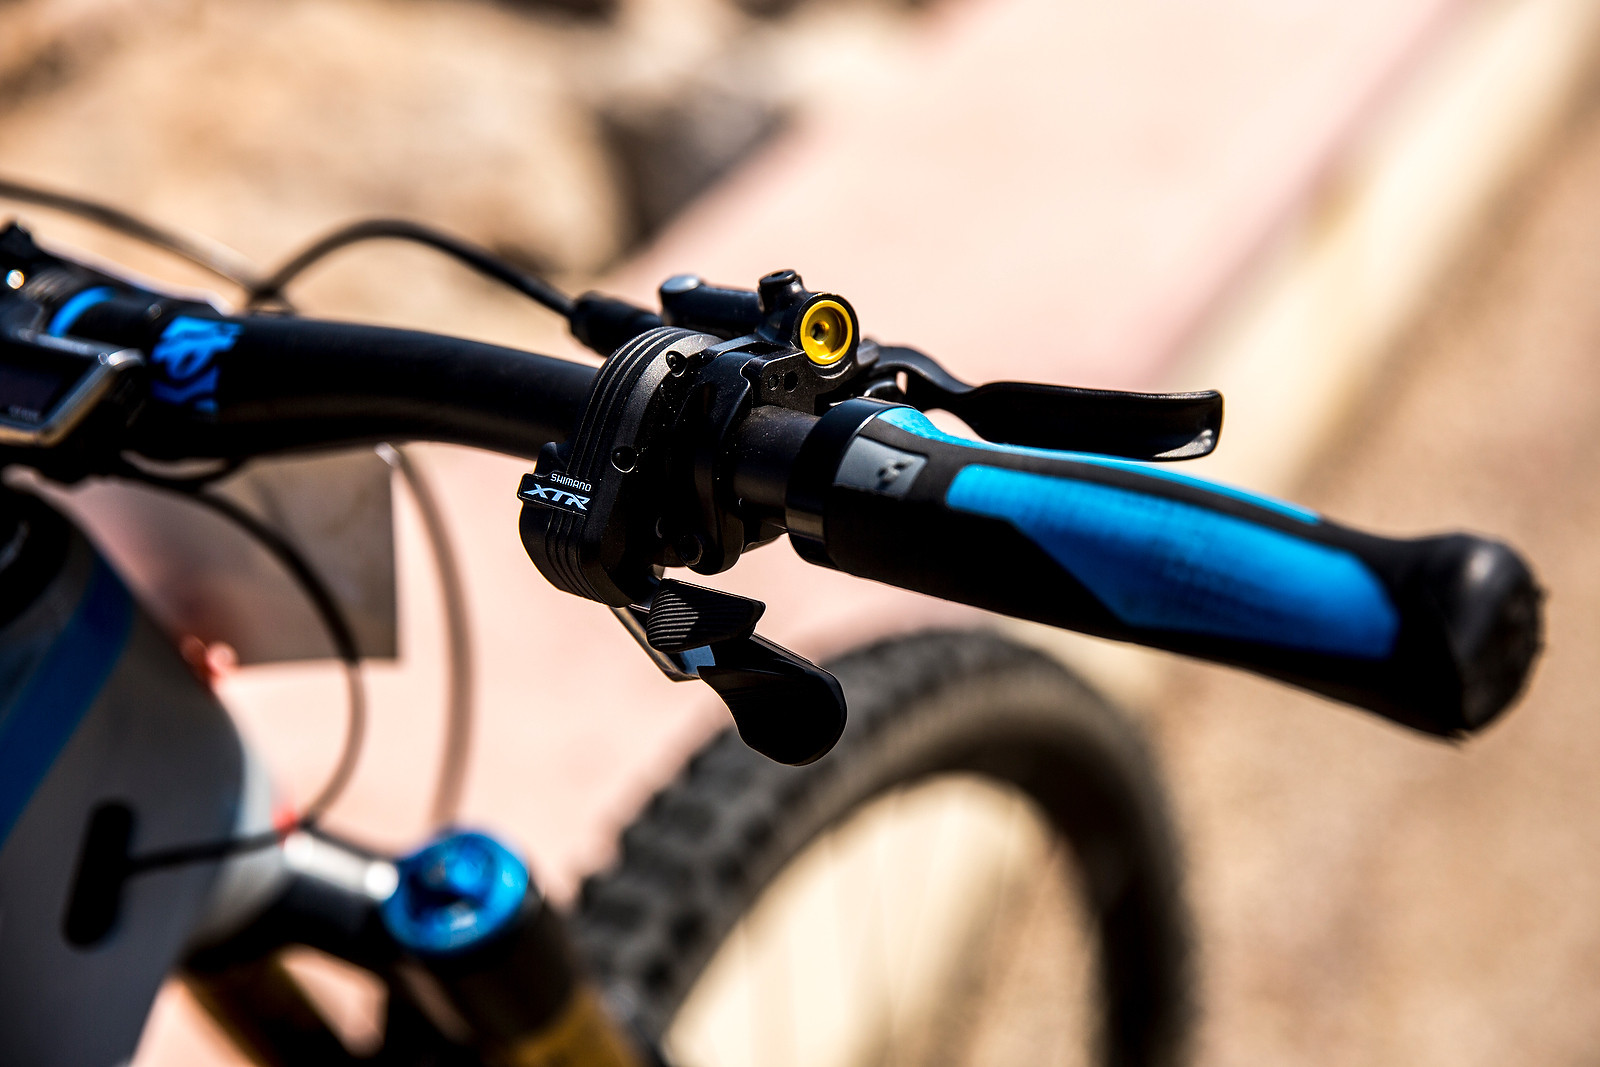 Shimano XTR Di2 Rear Shifter - WINNING BIKE: Nico Lau's Cube Stereo 140 29 - Mountain Biking Pictures - Vital MTB